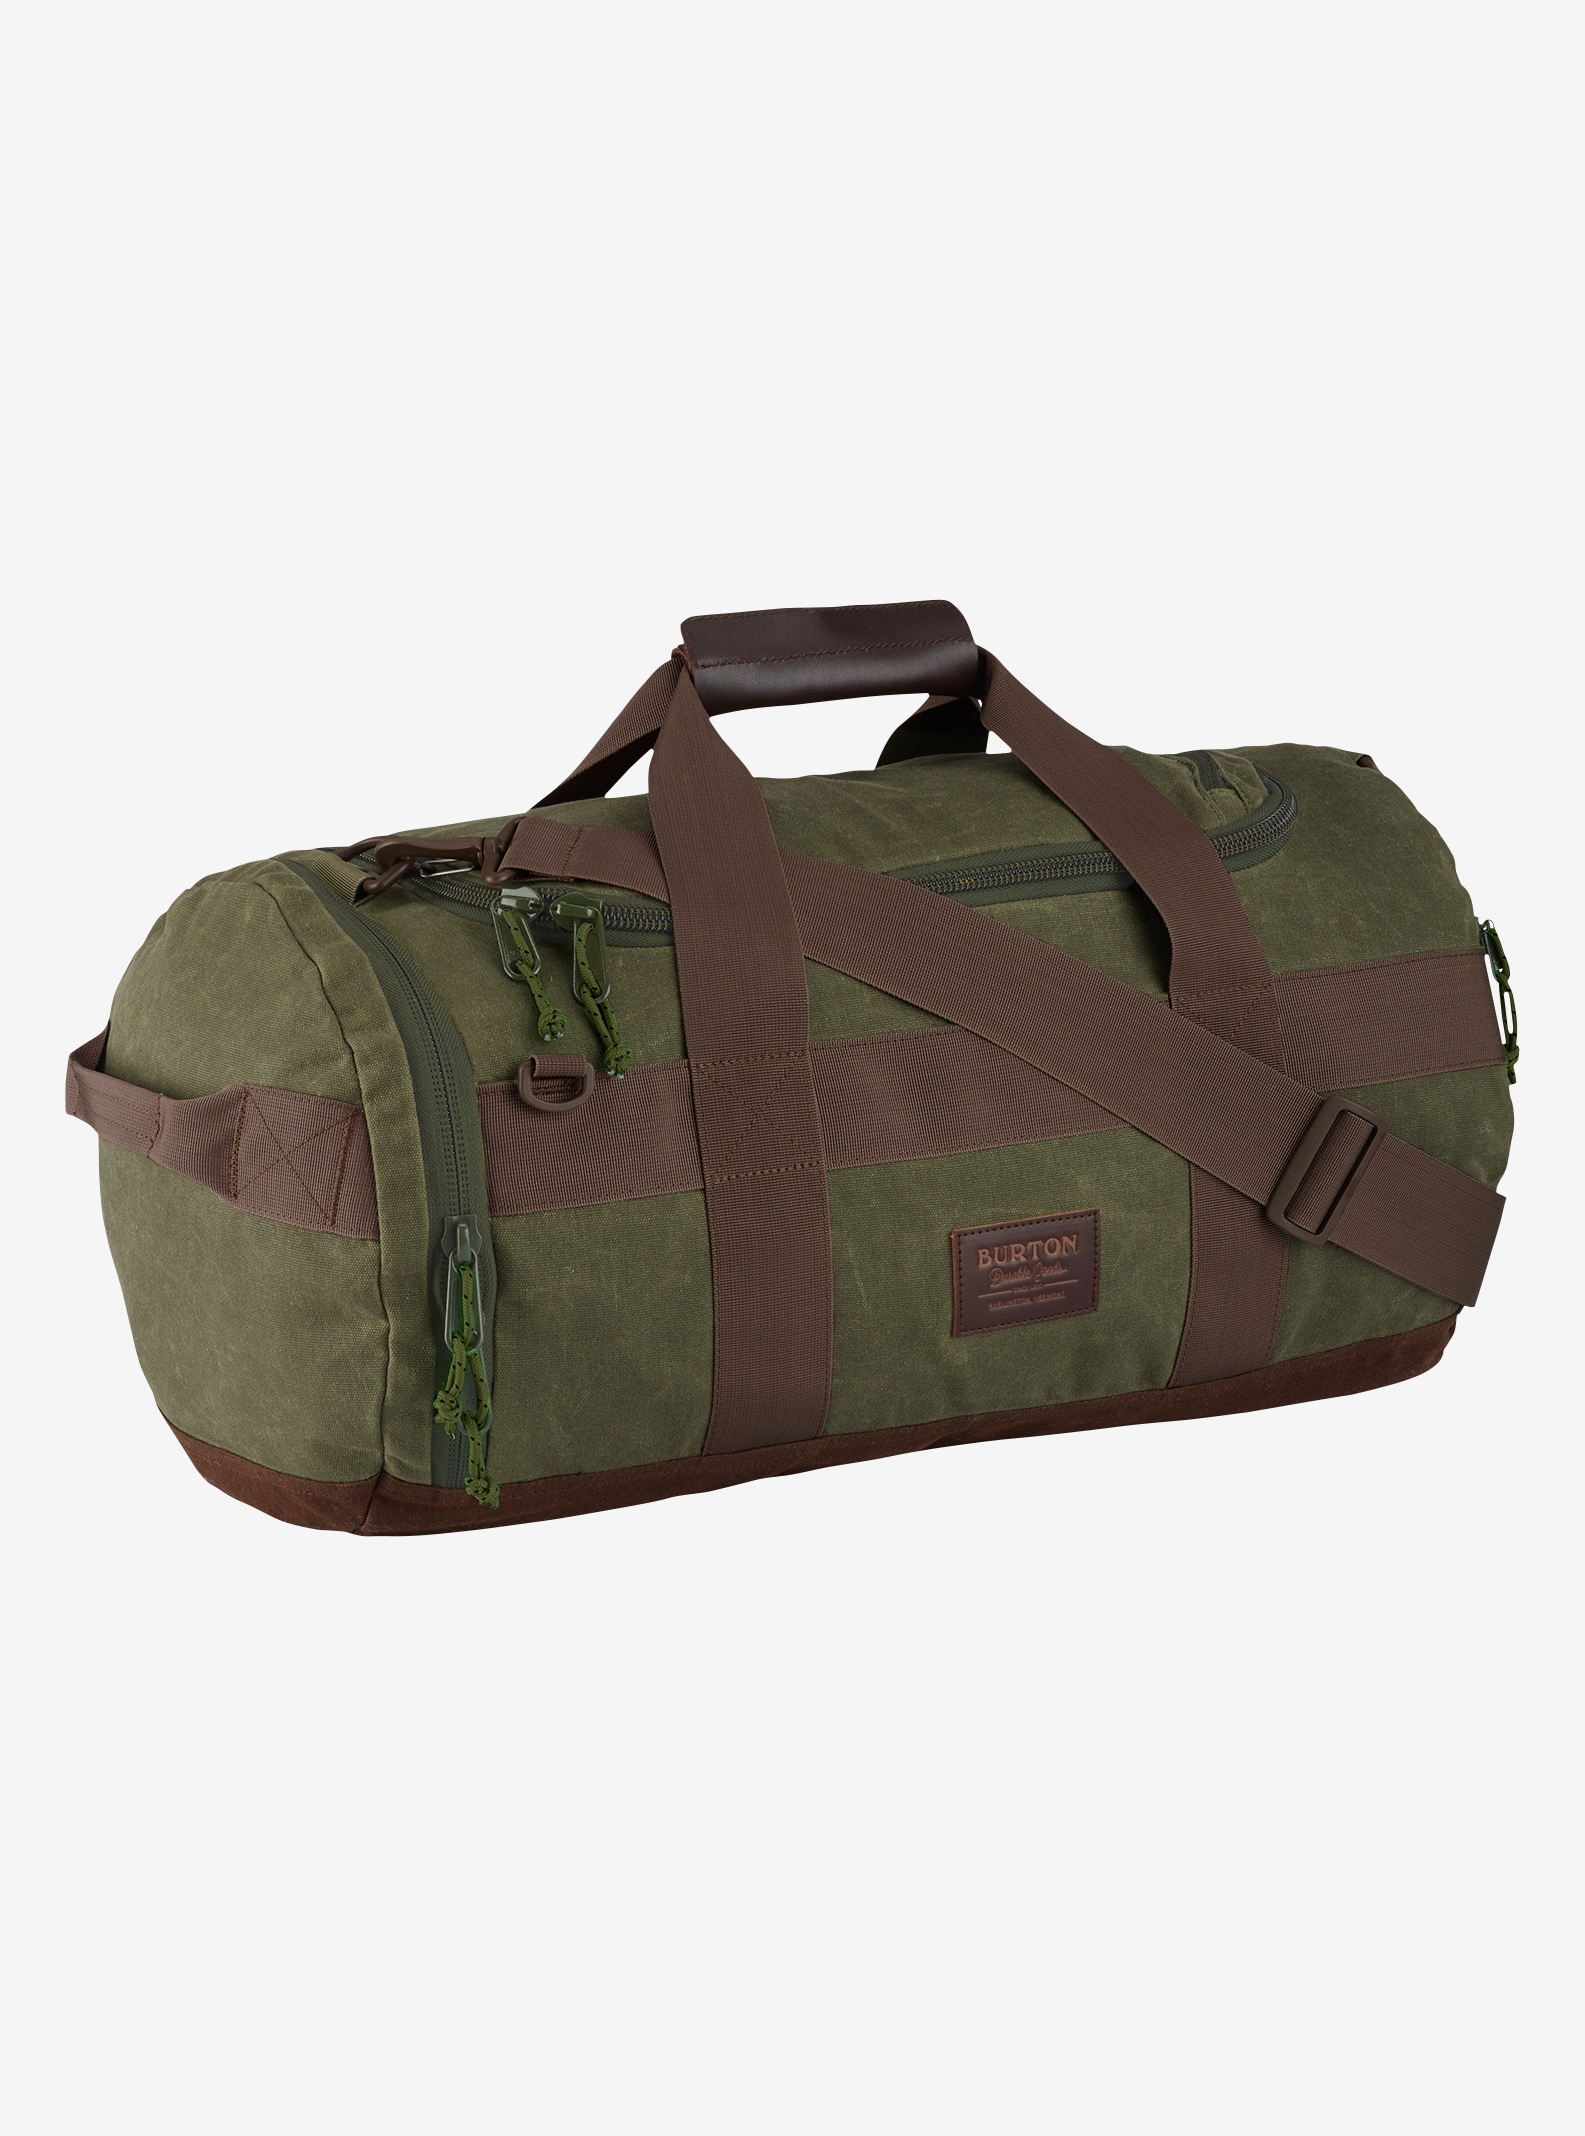 Burton Backhill Duffel Bag Small 40L shown in Forest Night Waxed Canvas